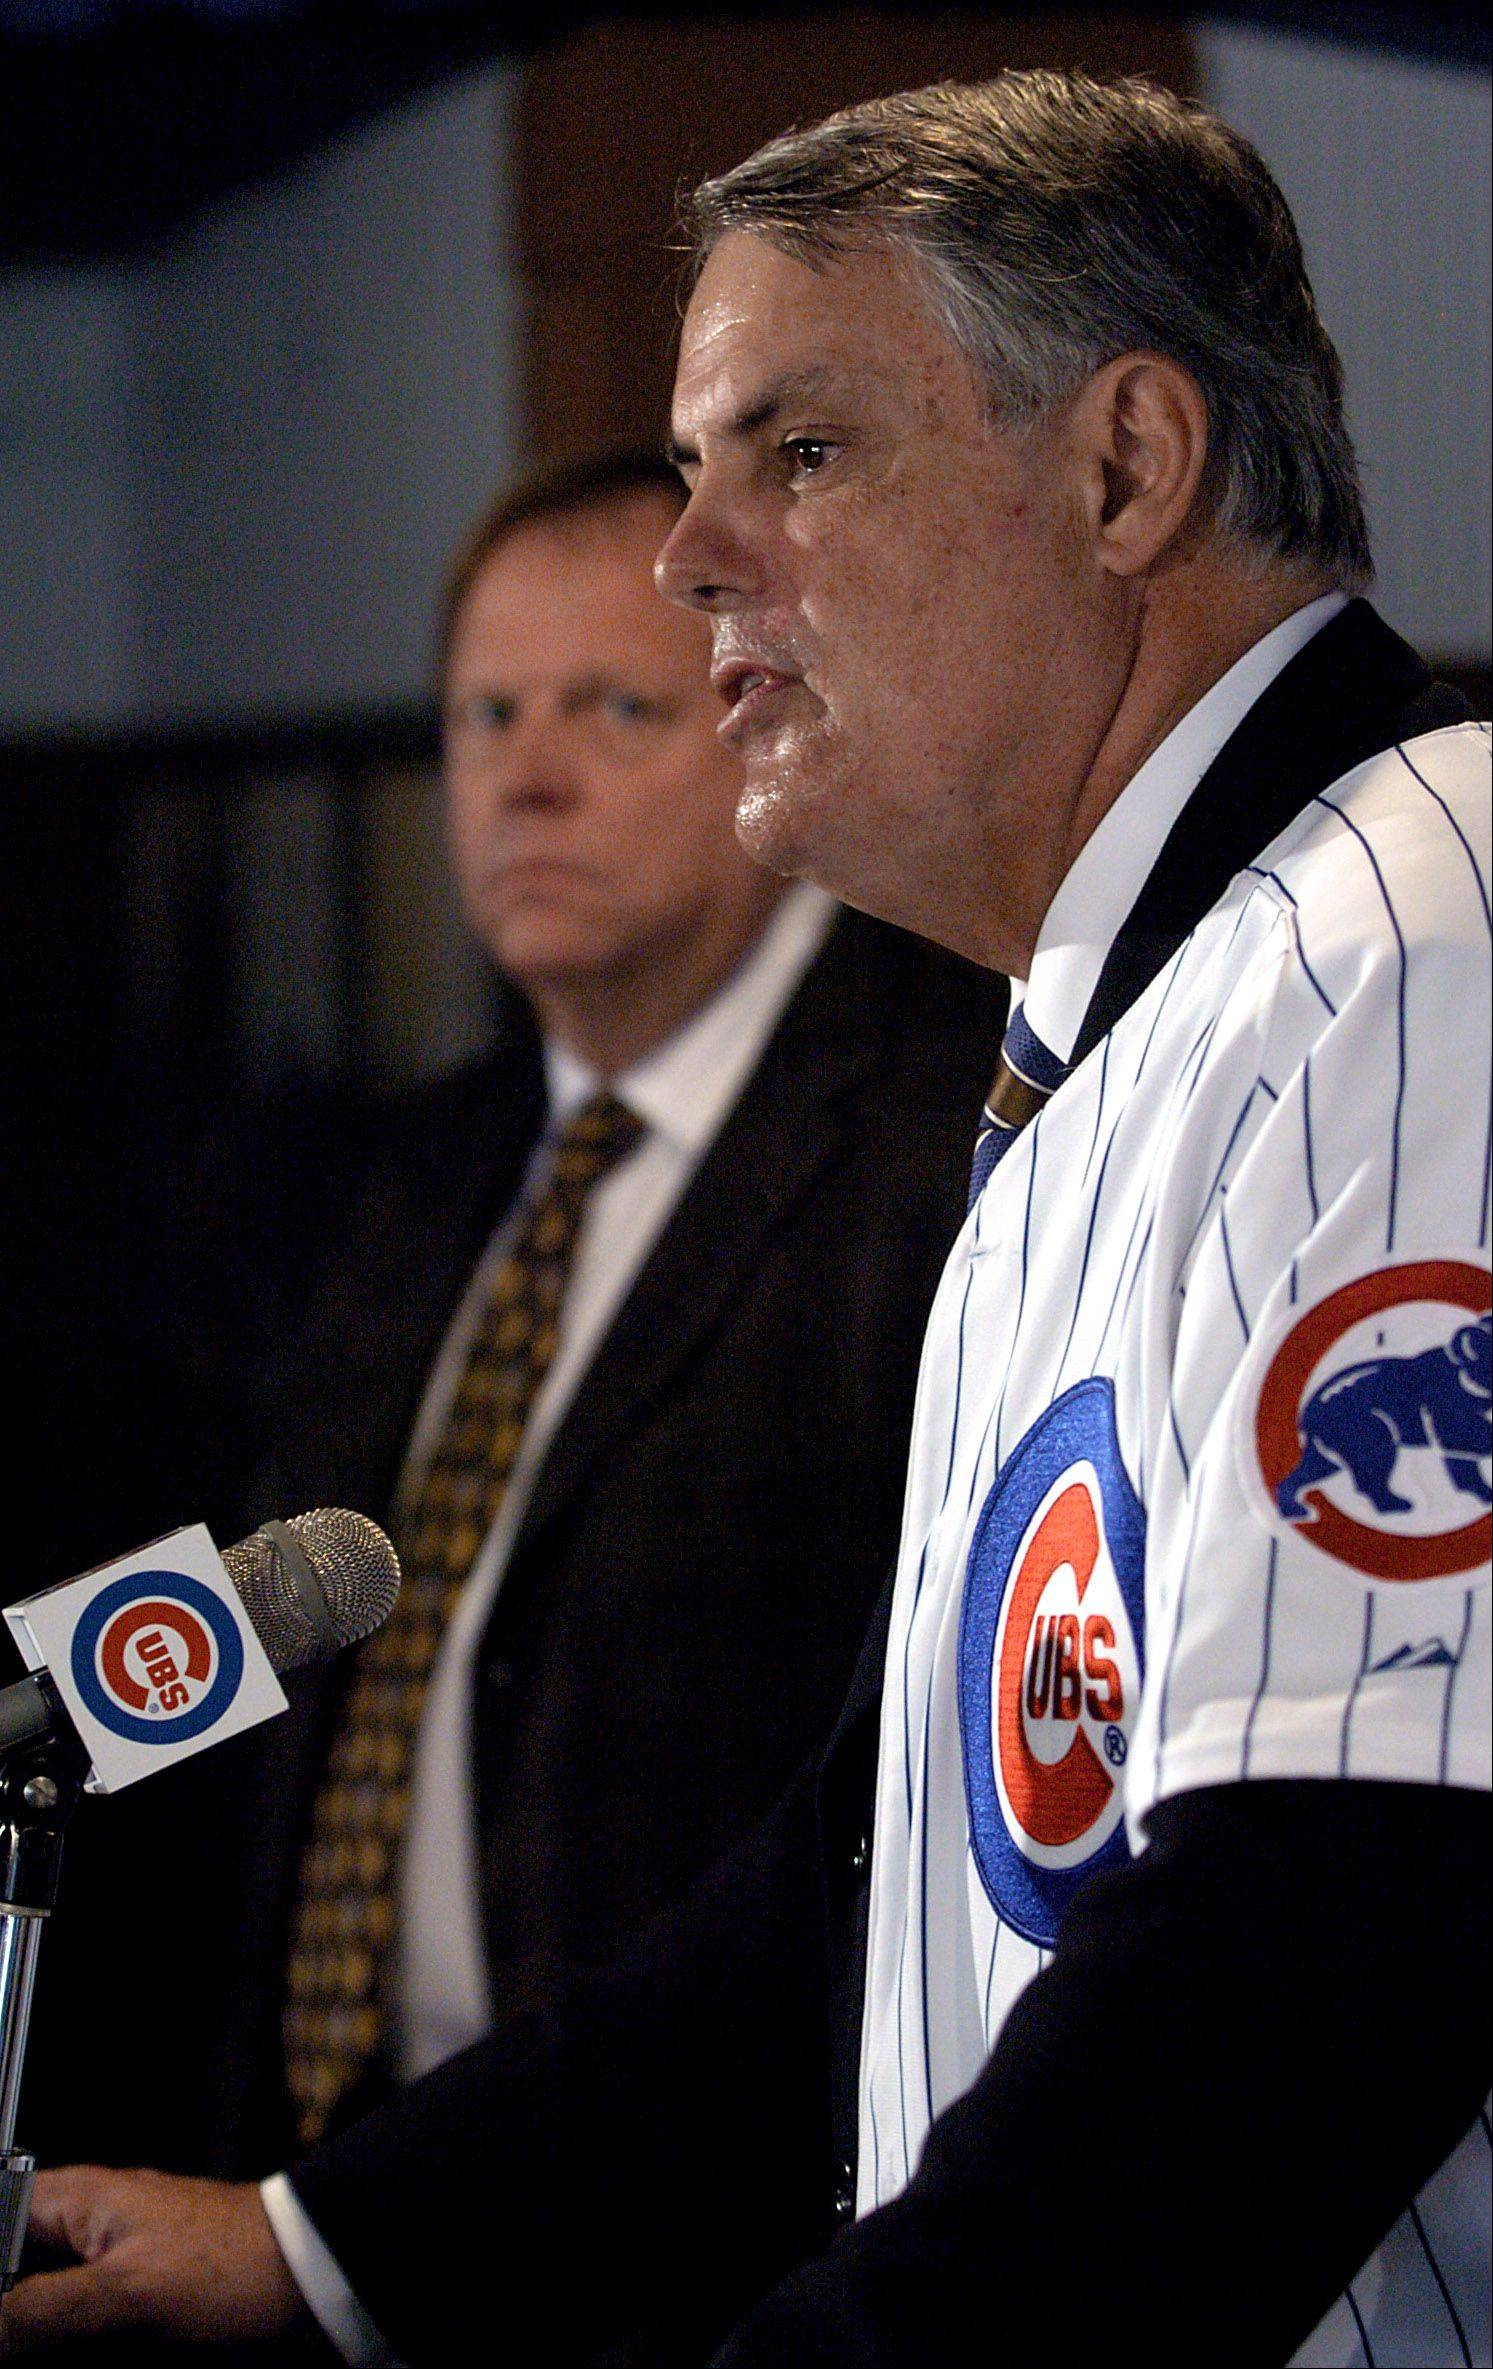 Chicago Cubs welcome new manager Lou Piniella to the club. New Cubs skipper Lou Piniella speaks to the media as GM Jim Hendry looks on.